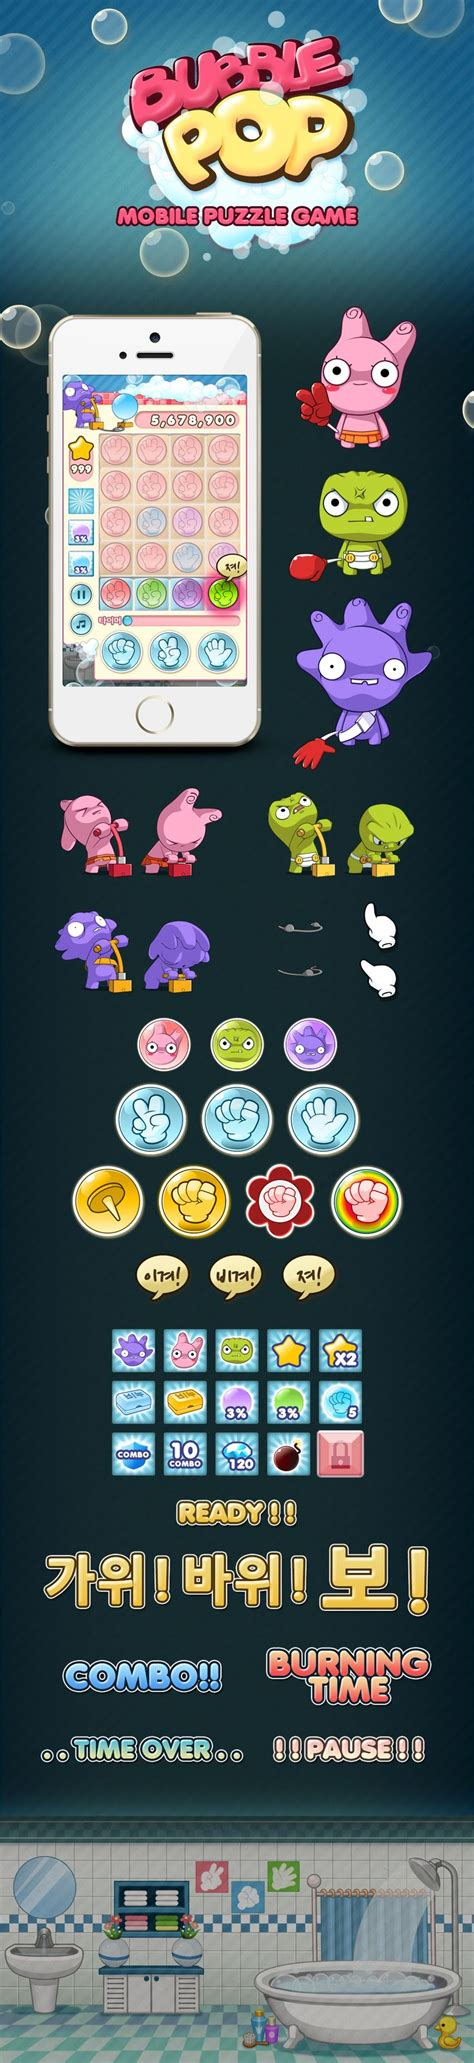 design game puzzles 25 best ideas about bubble puzzle game on pinterest